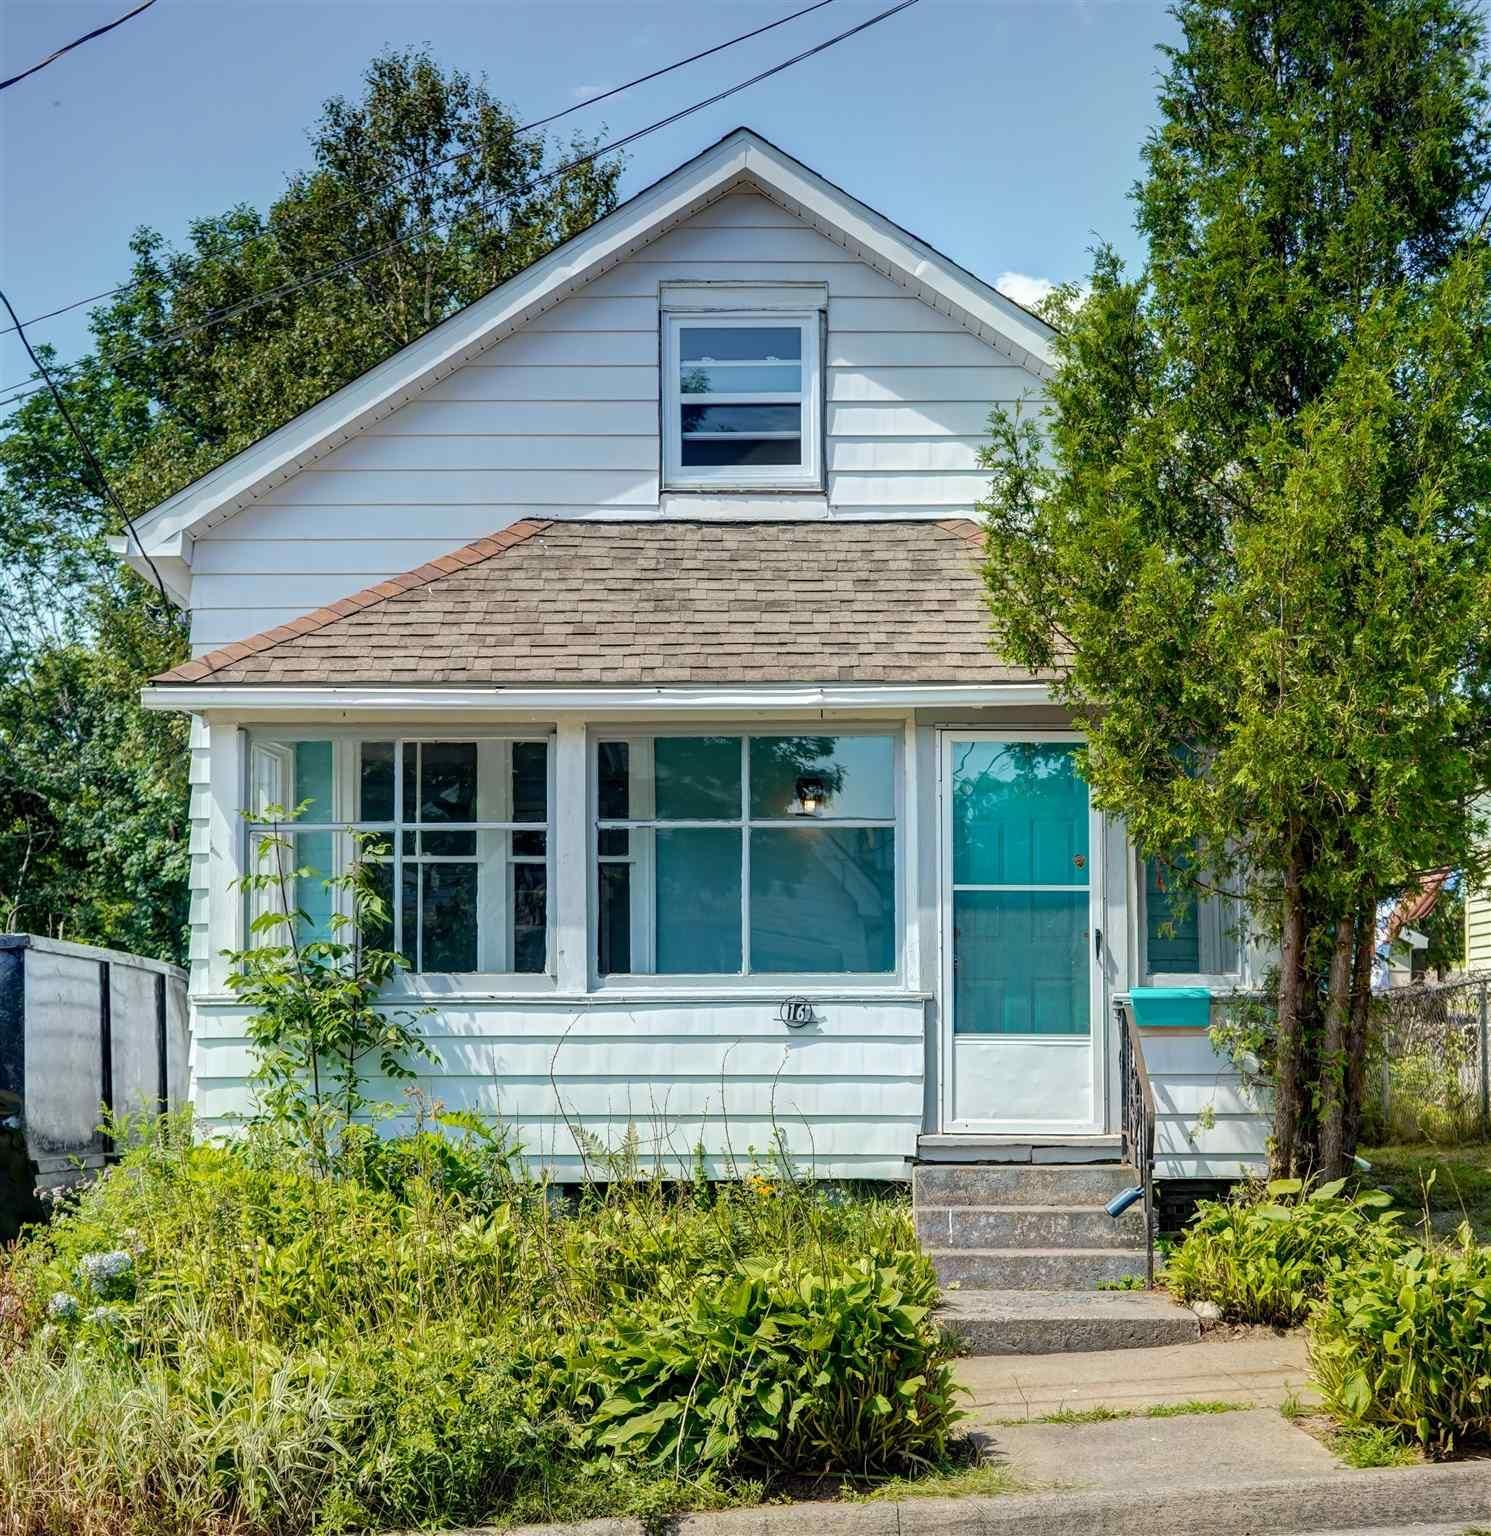 Main Photo: 16 Brookside Avenue in Dartmouth: 10-Dartmouth Downtown To Burnside Residential for sale (Halifax-Dartmouth)  : MLS®# 202121288